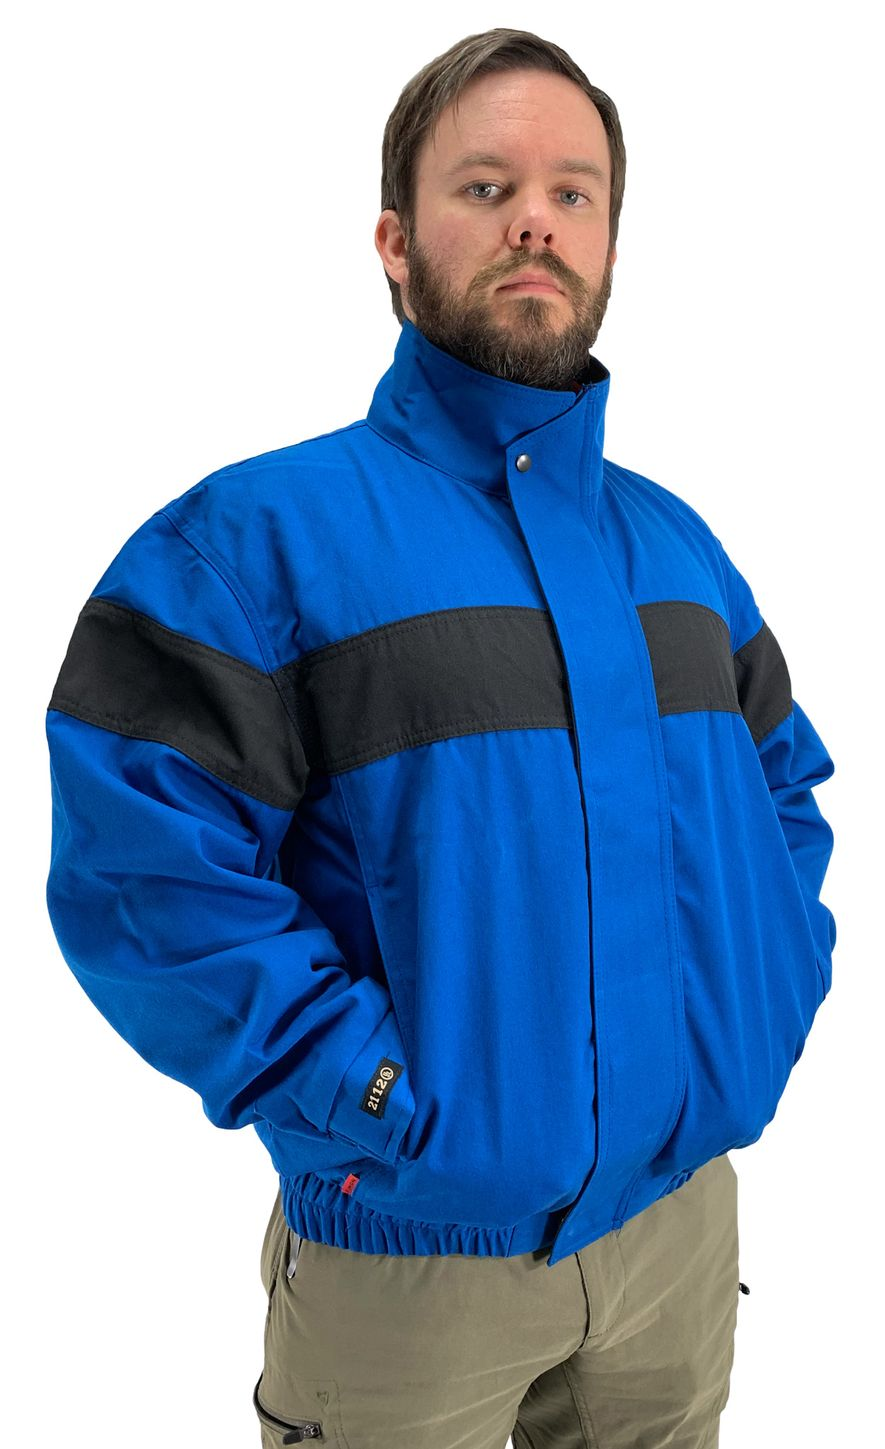 workrite-fire-resistant-safety-jacket-300nx603006-6-oz-nomex-iiia-royal-blue-front.jpg